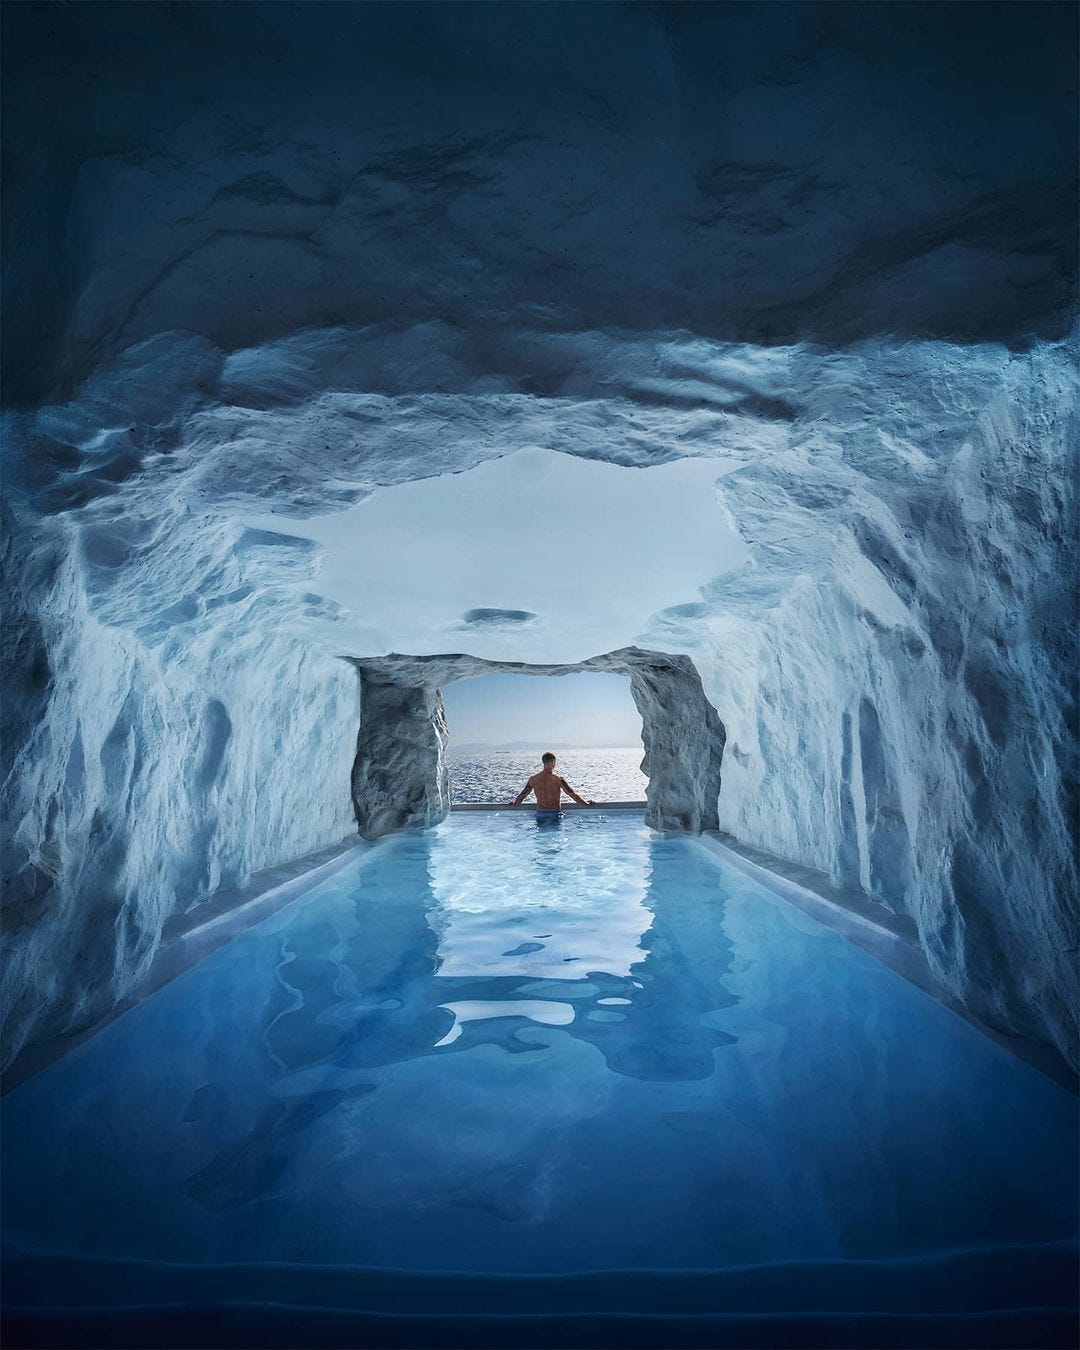 Man in ice cave pool